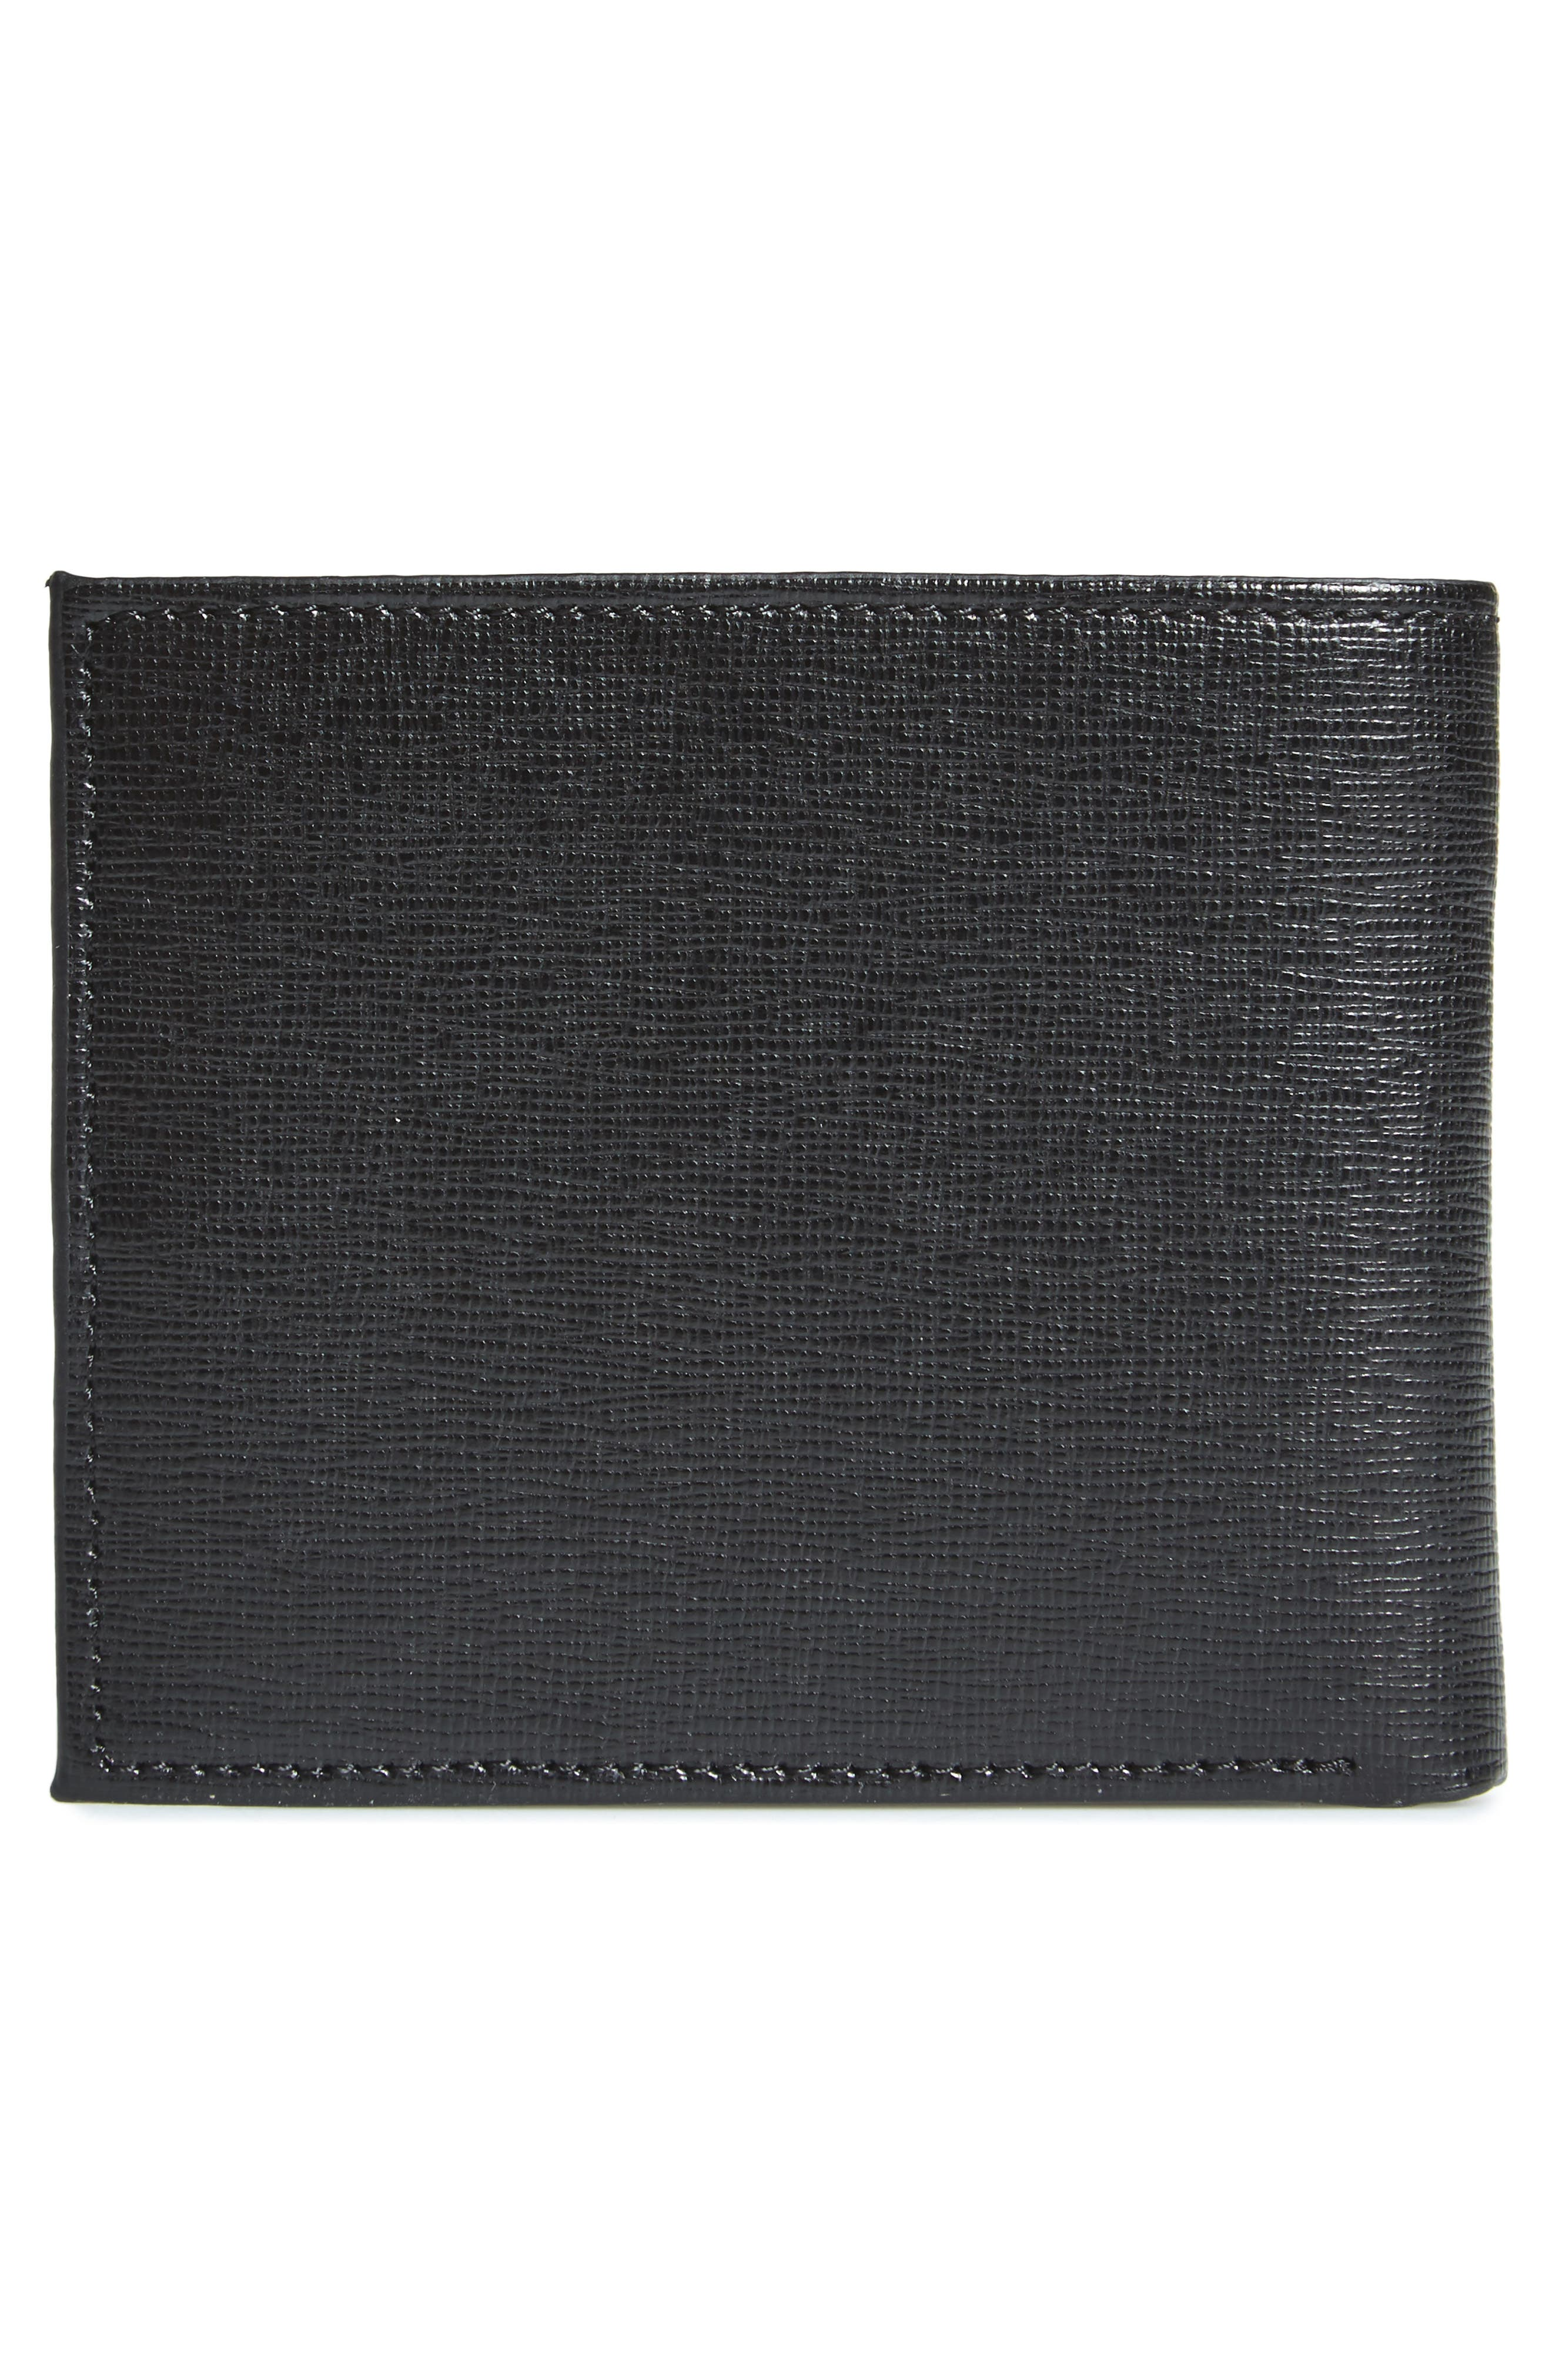 Stitchup Bifold Wallet,                             Alternate thumbnail 3, color,                             001